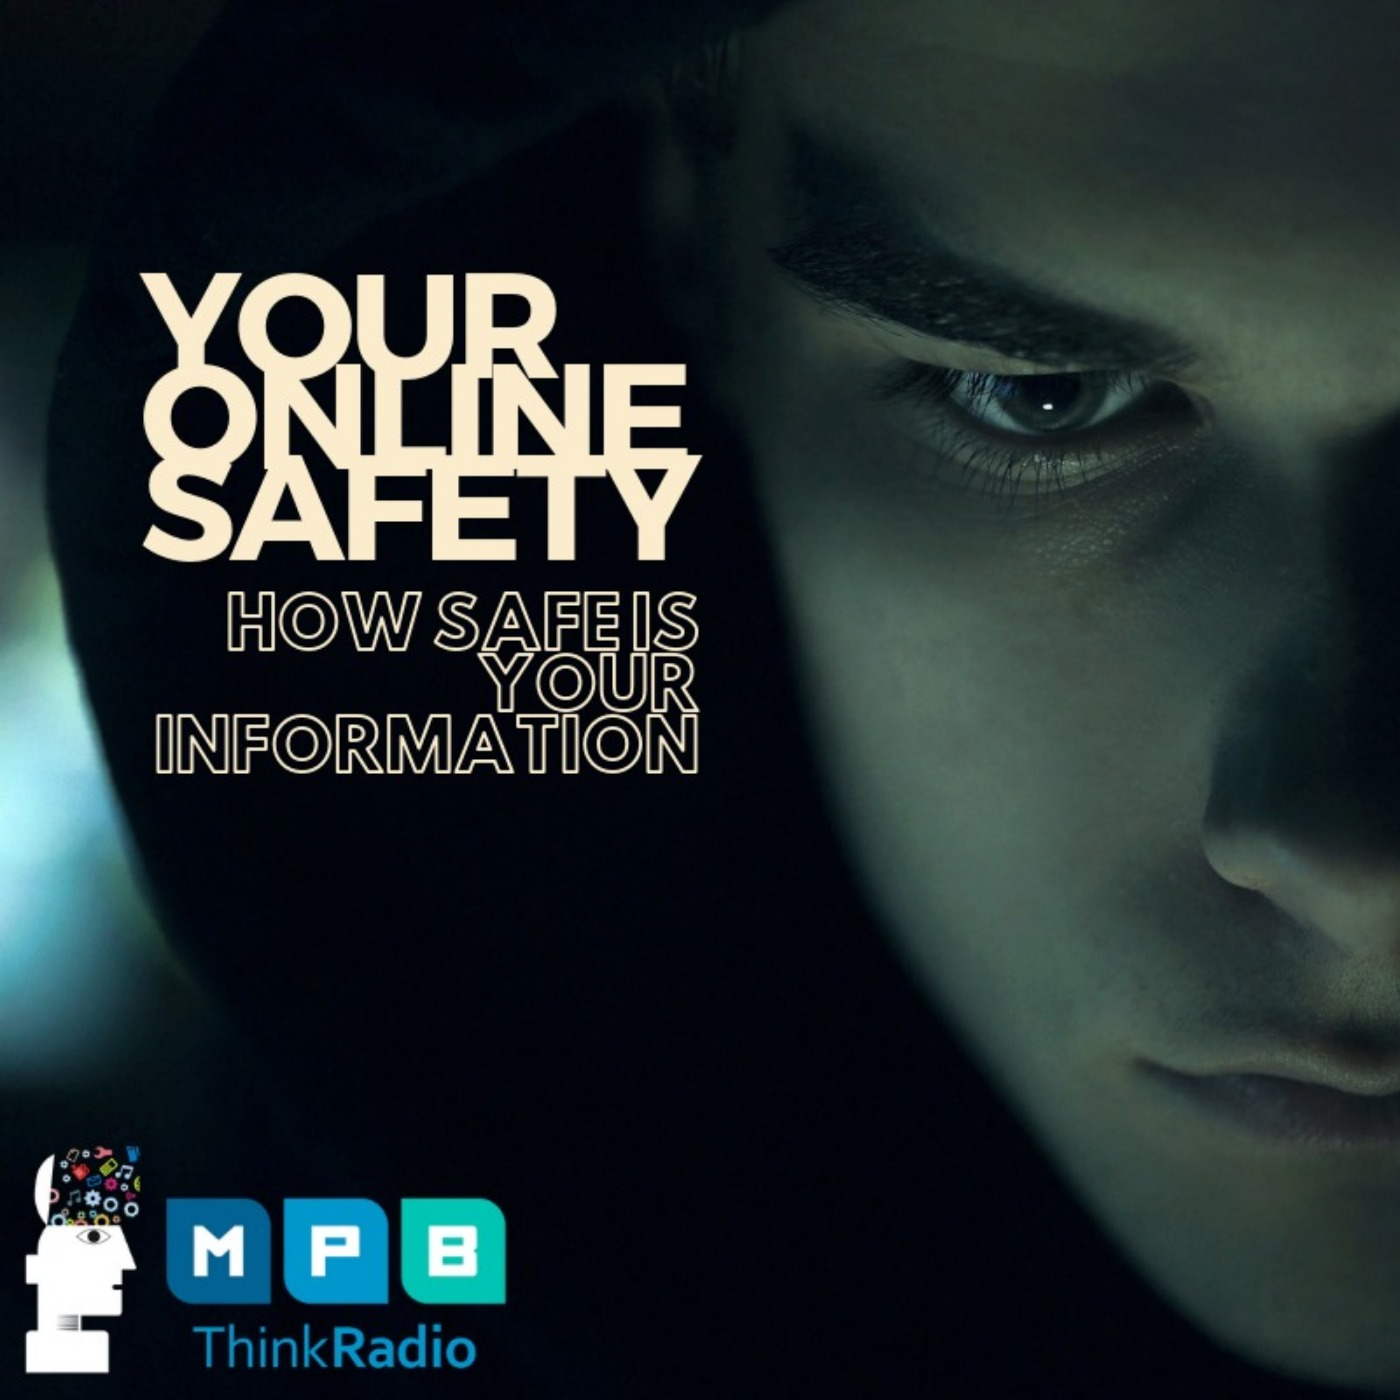 Your Online Safety